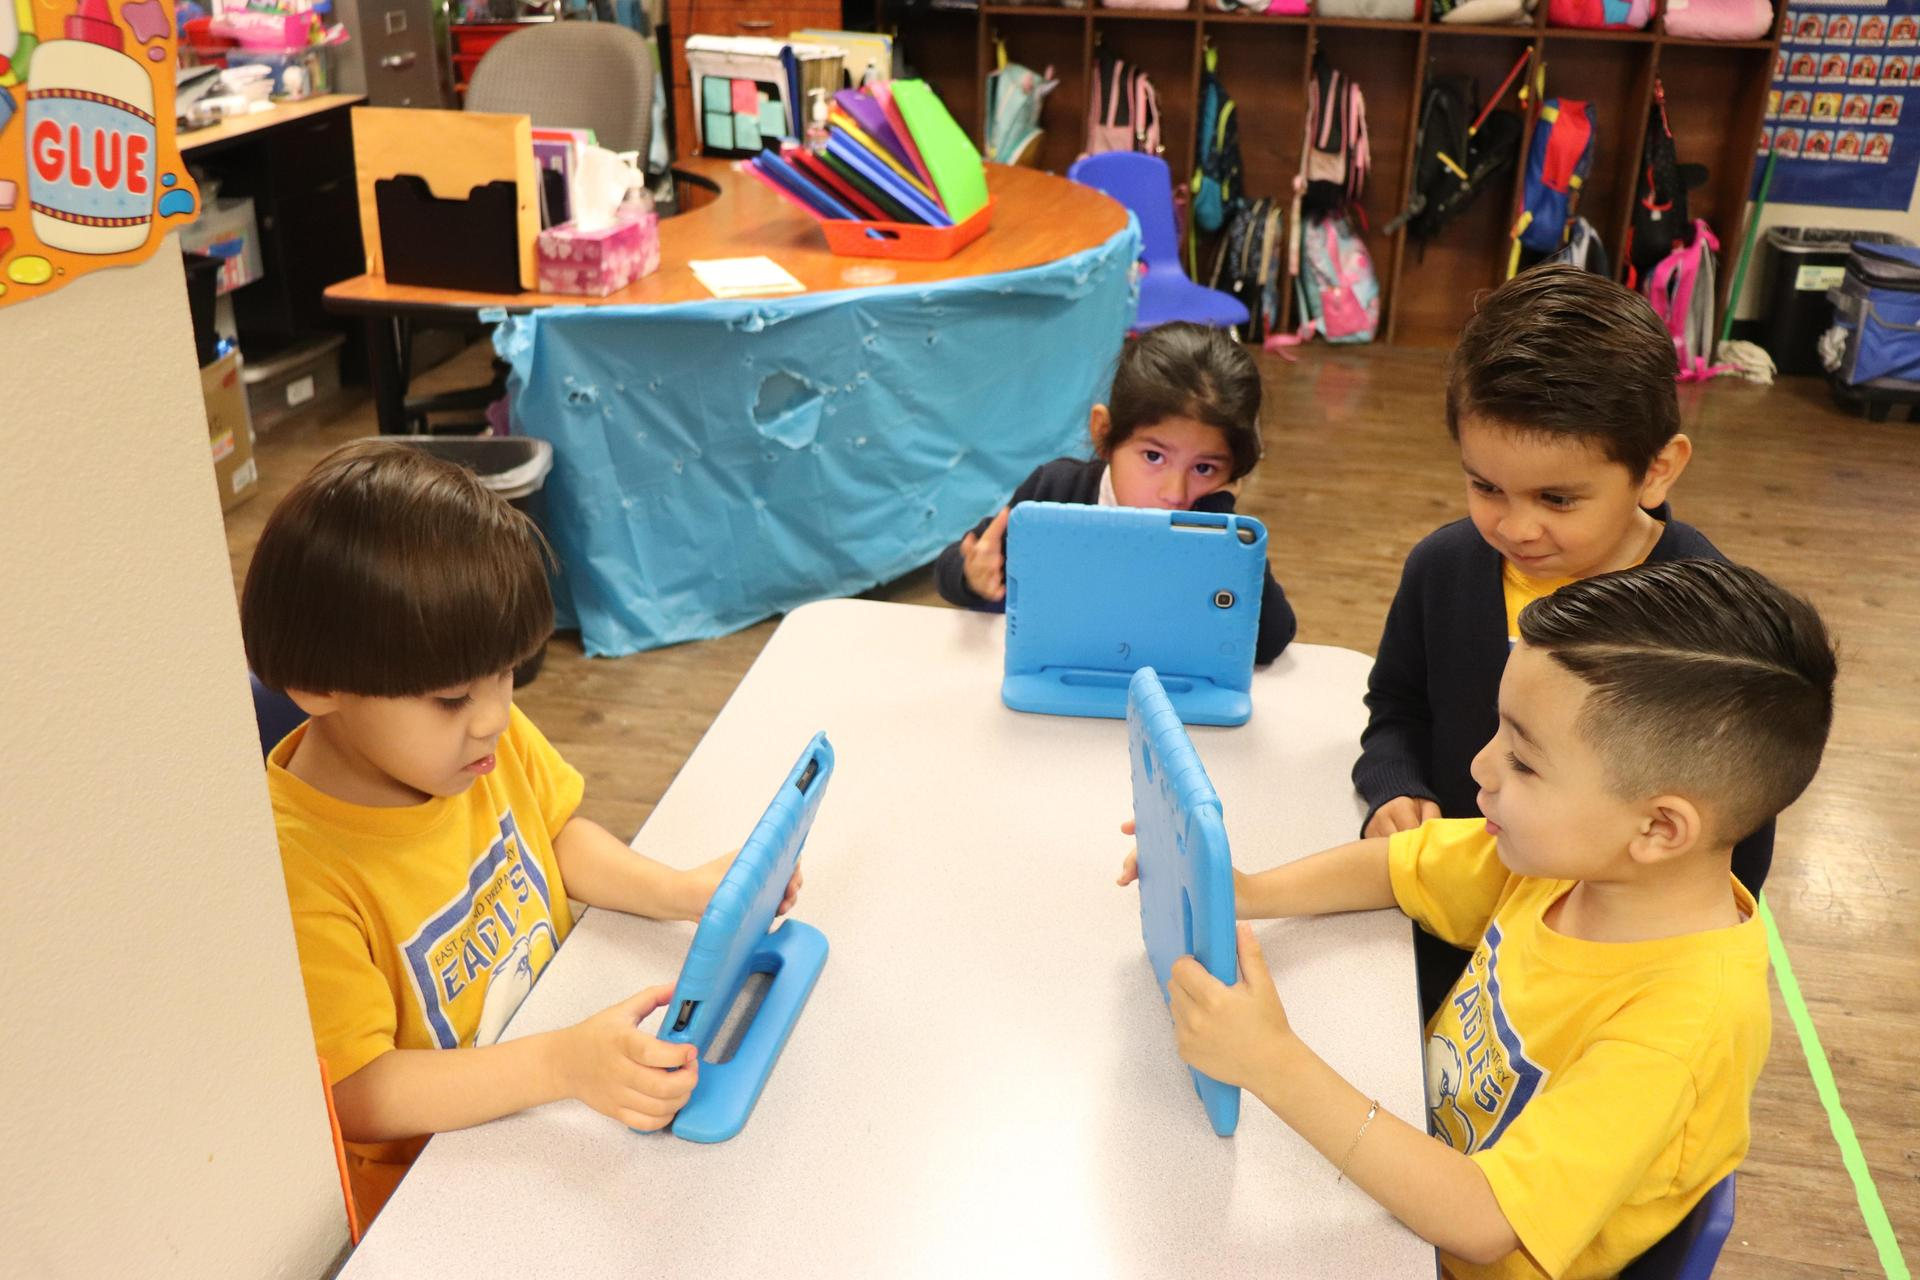 Technology used in PreK education